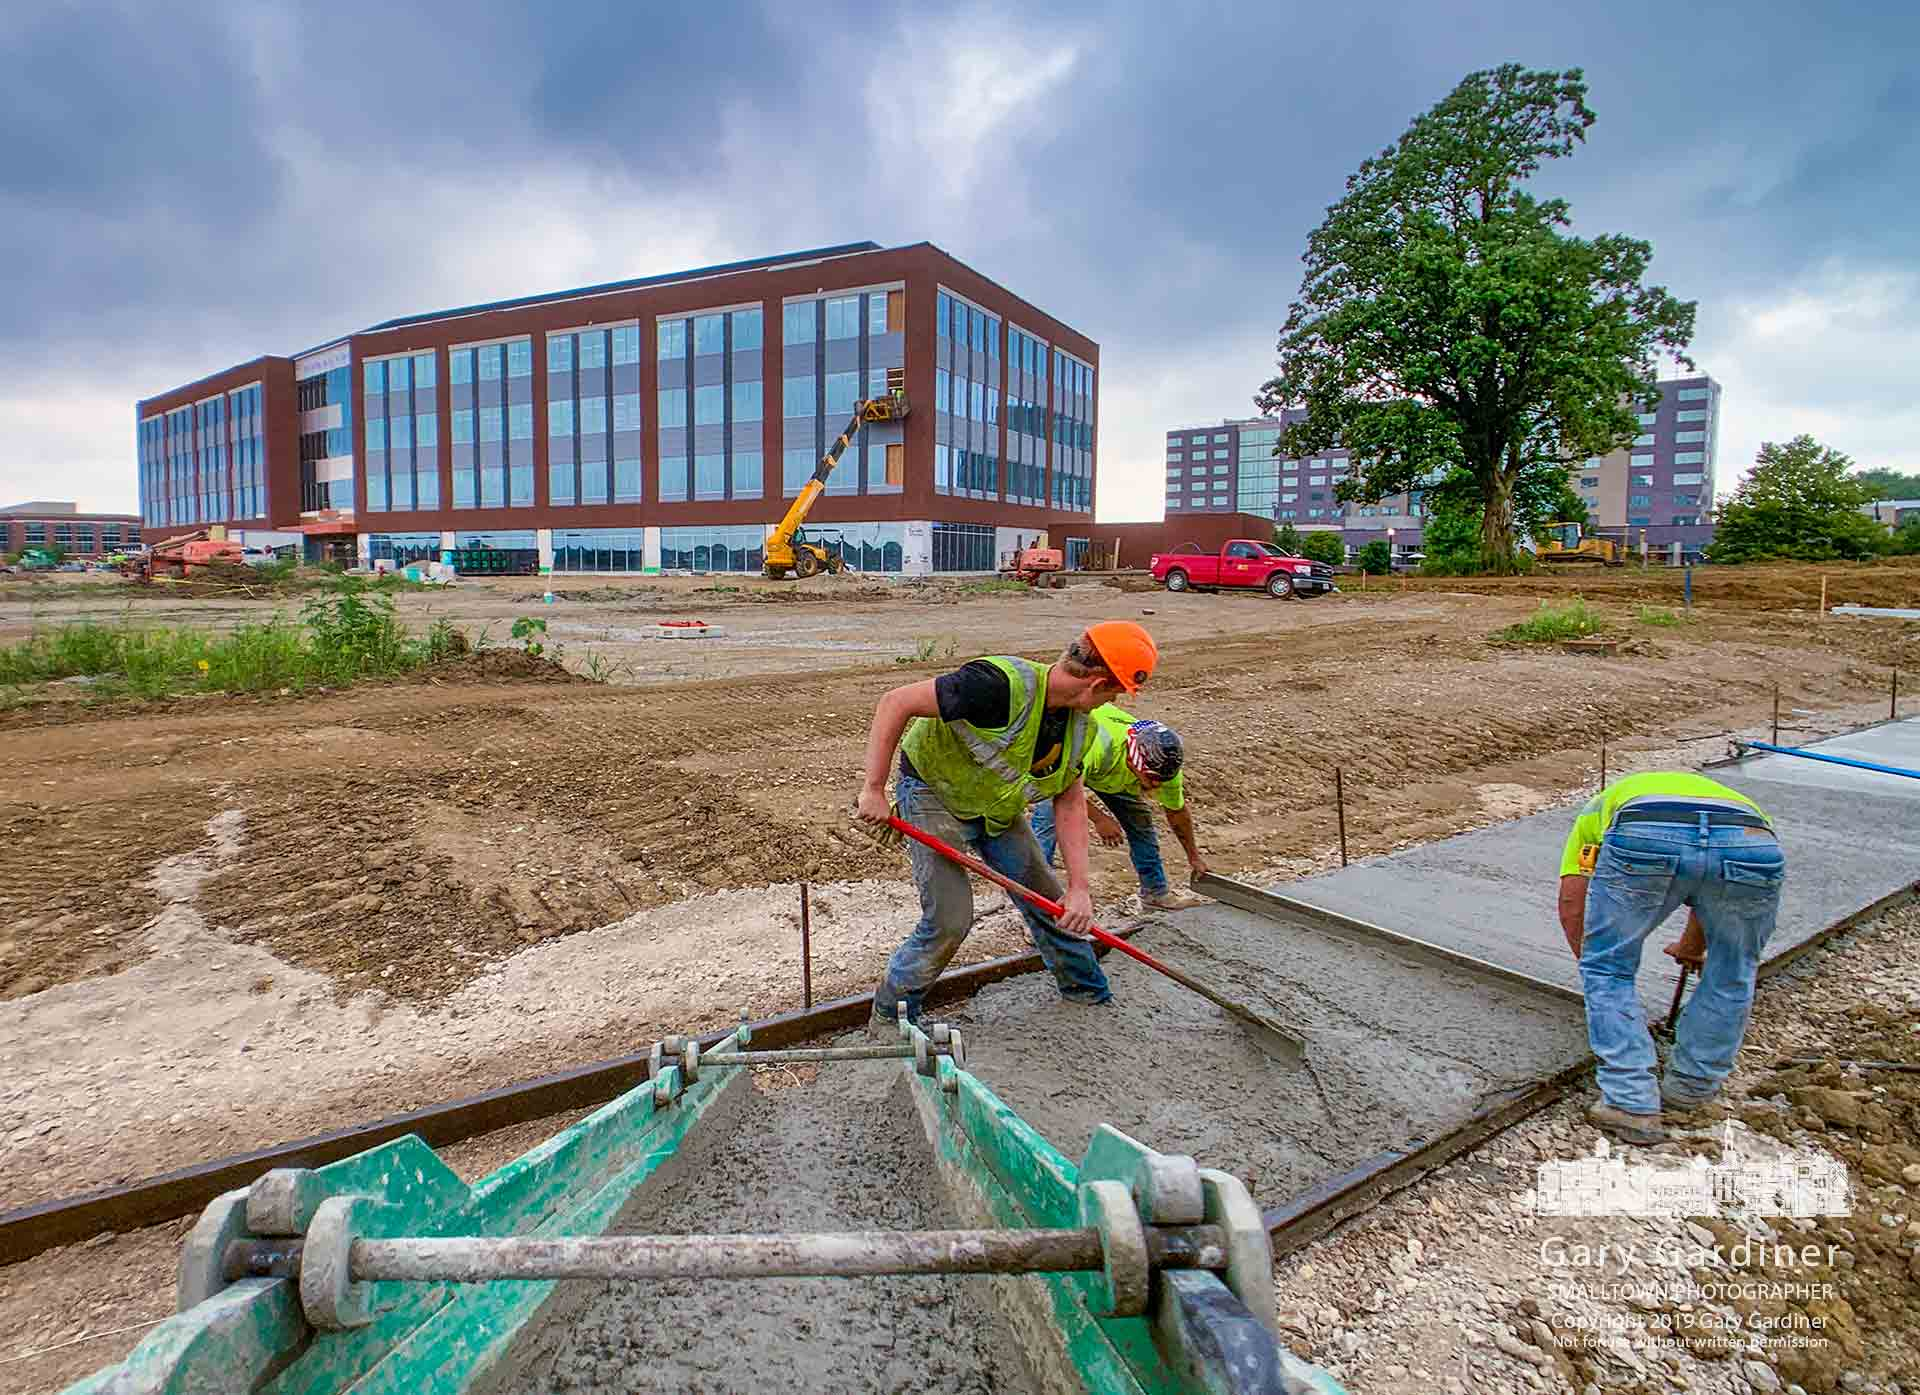 Workers pour a section of sidewalk around the edge of what will become the parking for DHL's new North and South America headquarters building nearing completion in the Westar development area. My Final Photo for July 30, 2019.